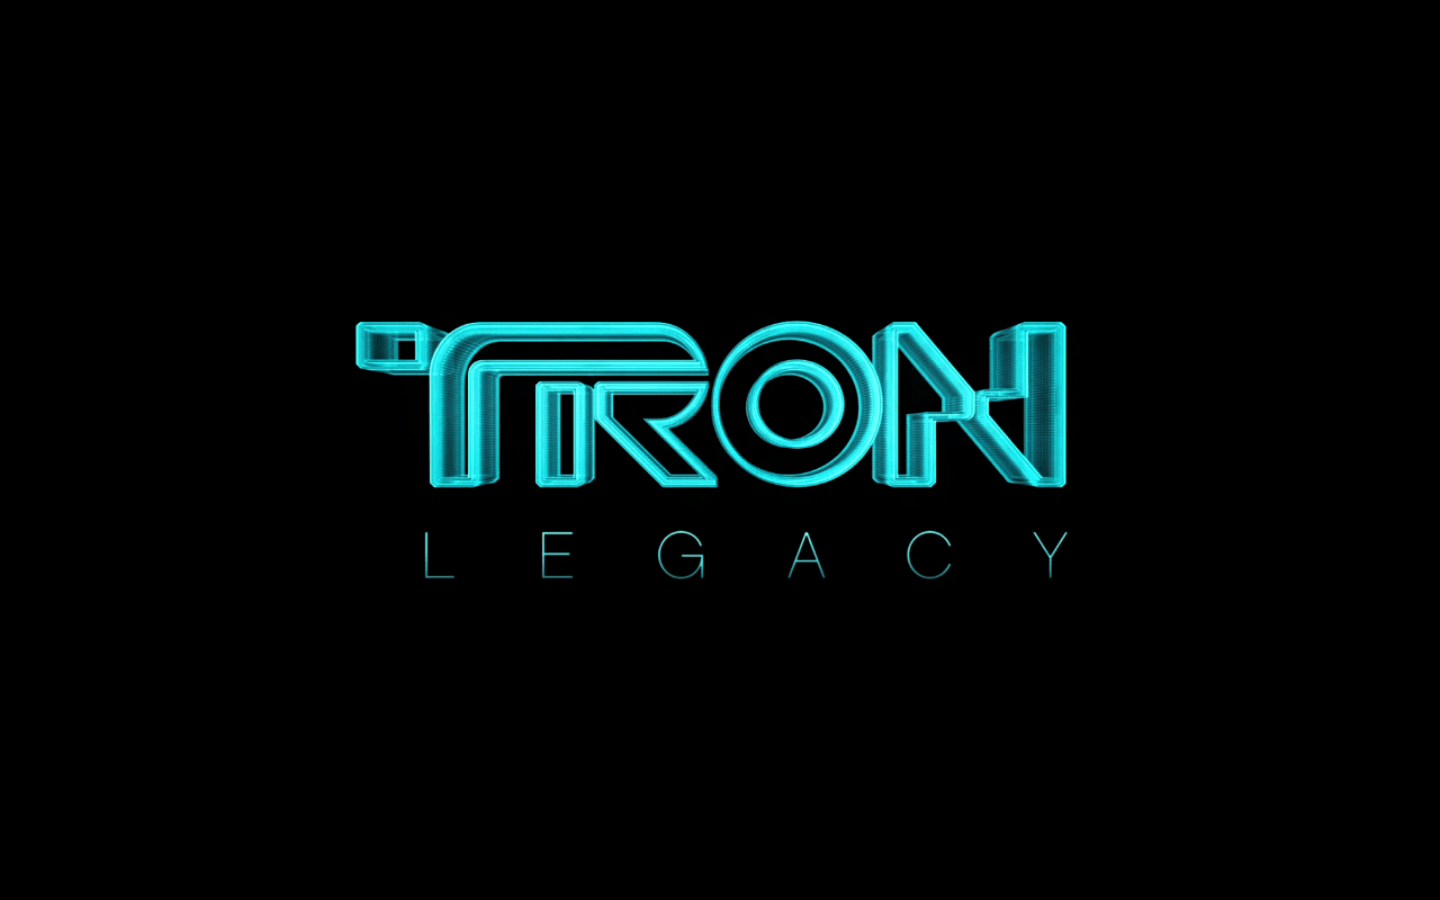 awesome tronlegacy wallpapers - photo #29